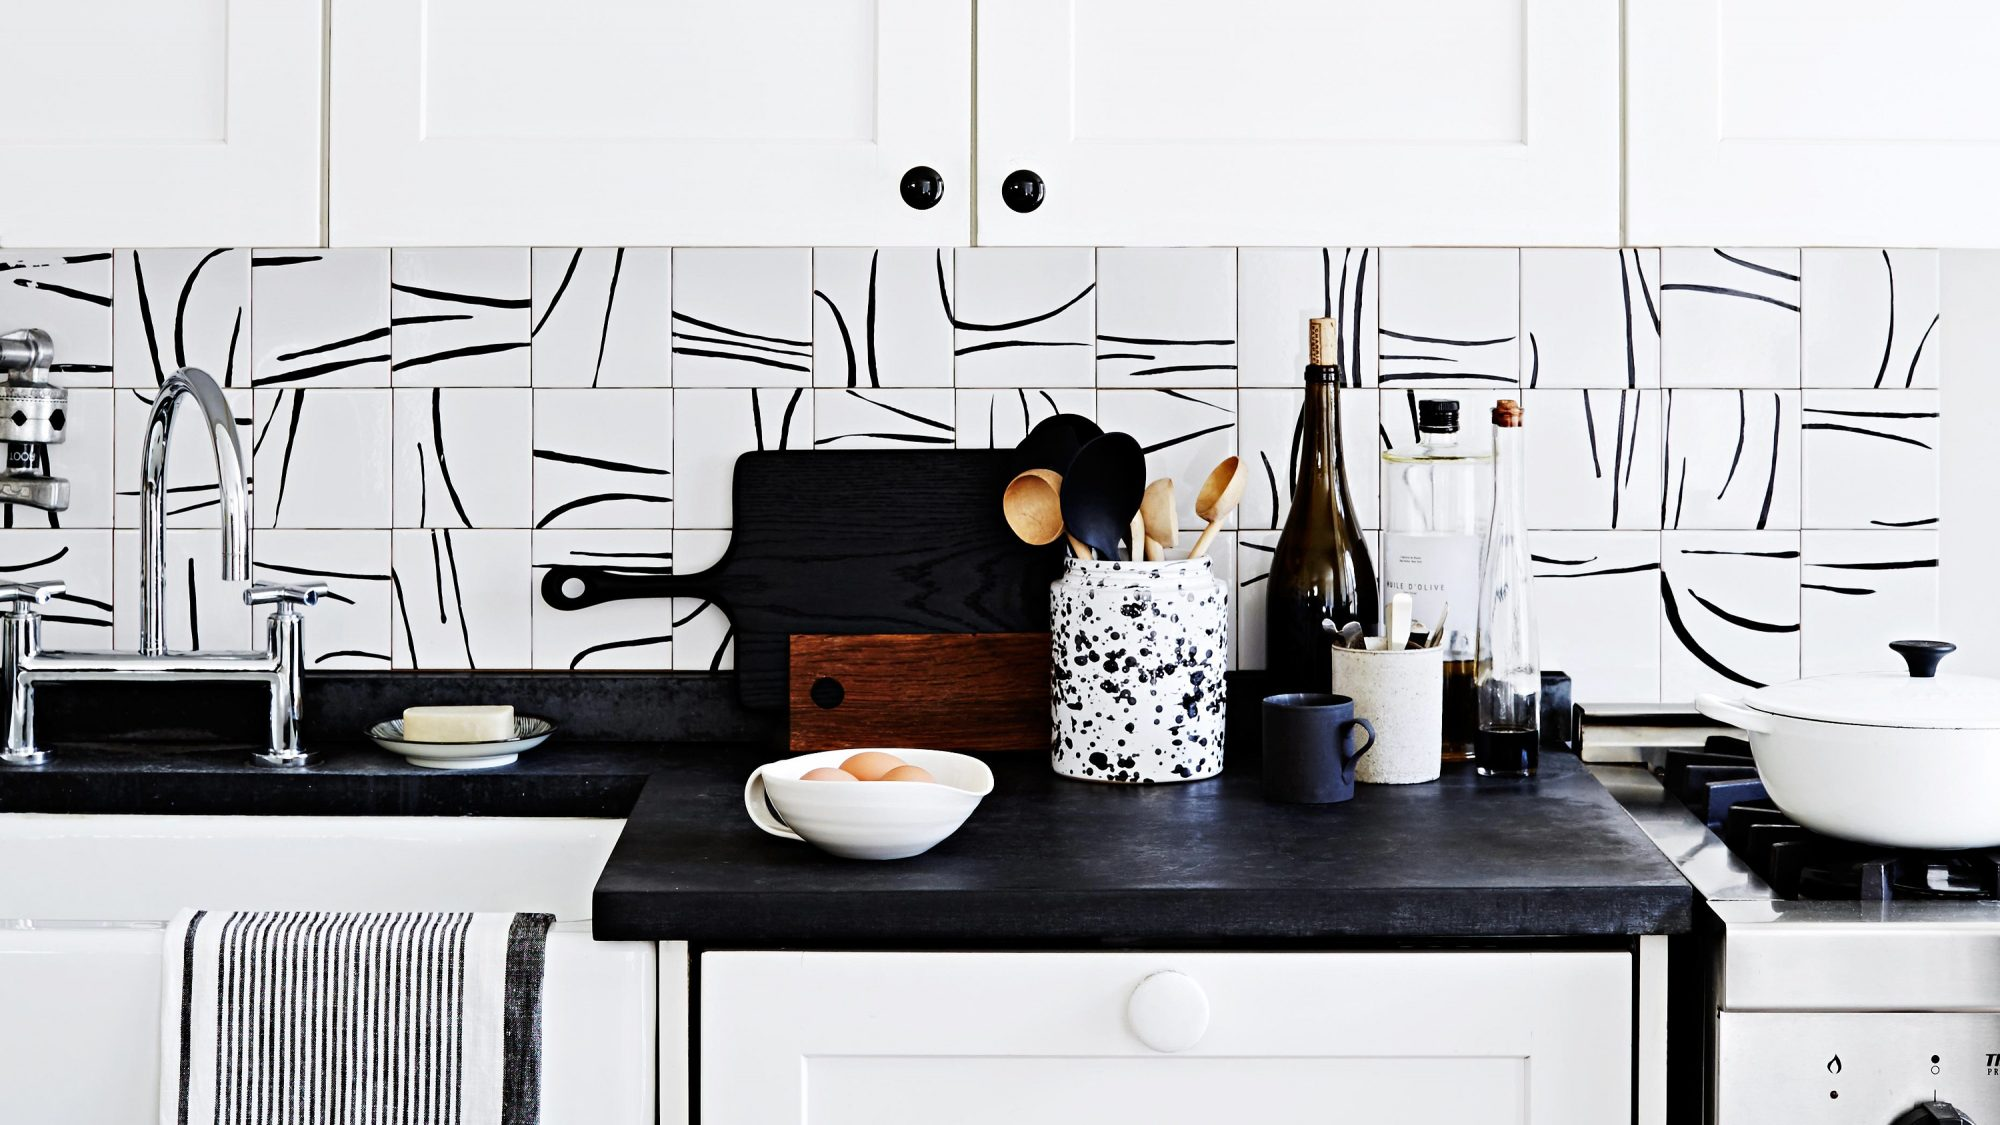 various black and white patterns themed kitchen decor and backsplash